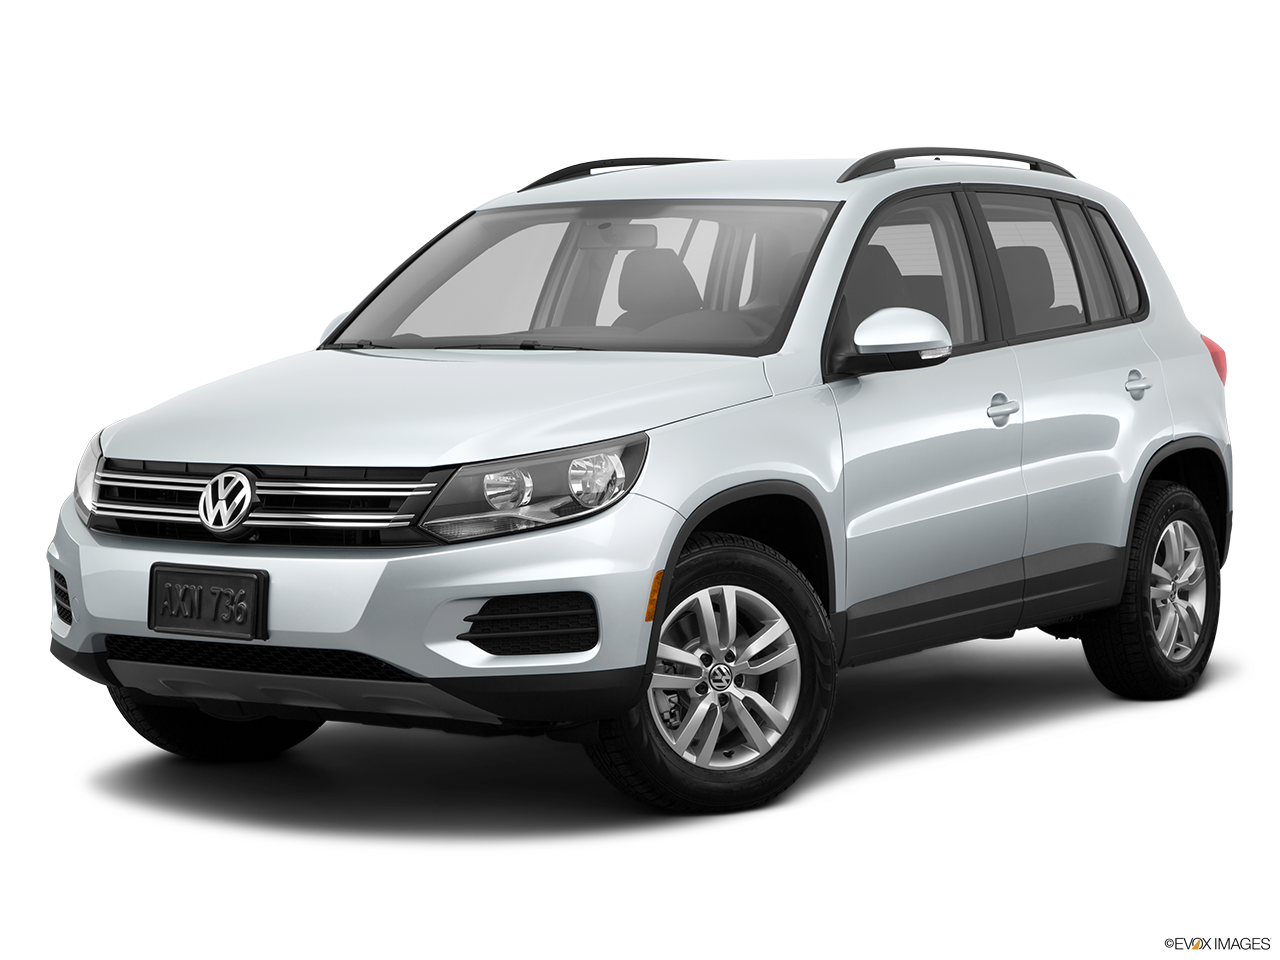 2015 Volkswagen Tiguan Dealer Serving Nashville Hallmark